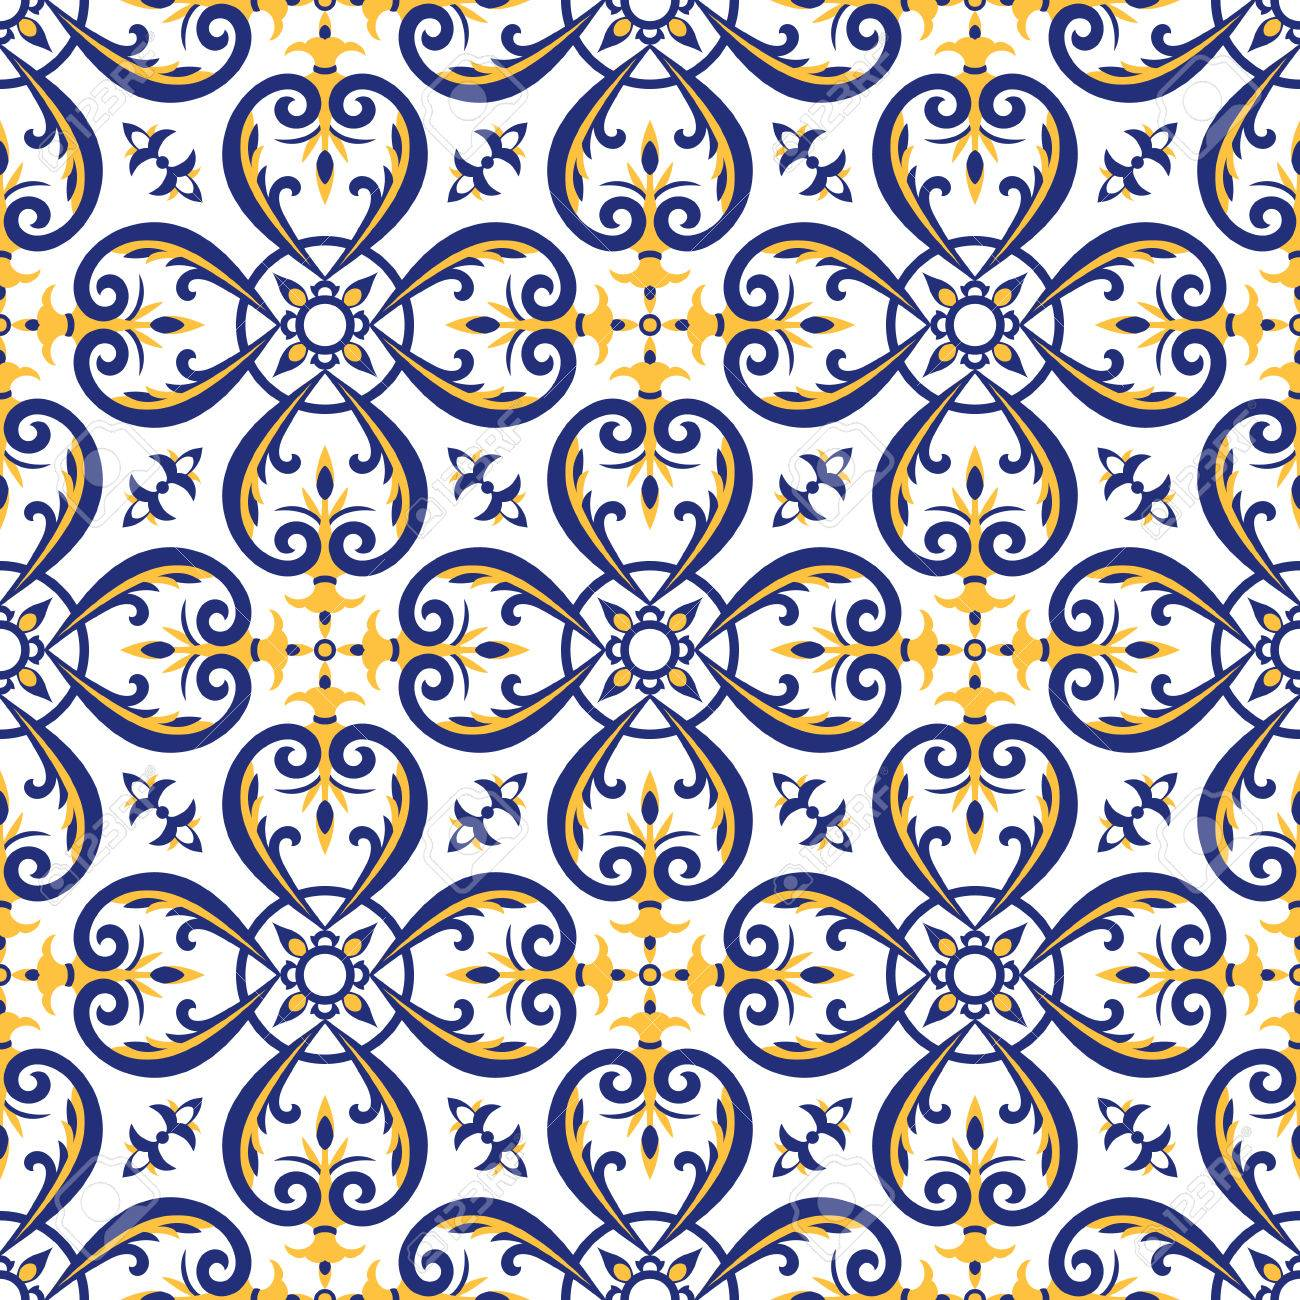 Mexican Tiles Pattern Vector With Blue, Yellow And White Ornaments ...